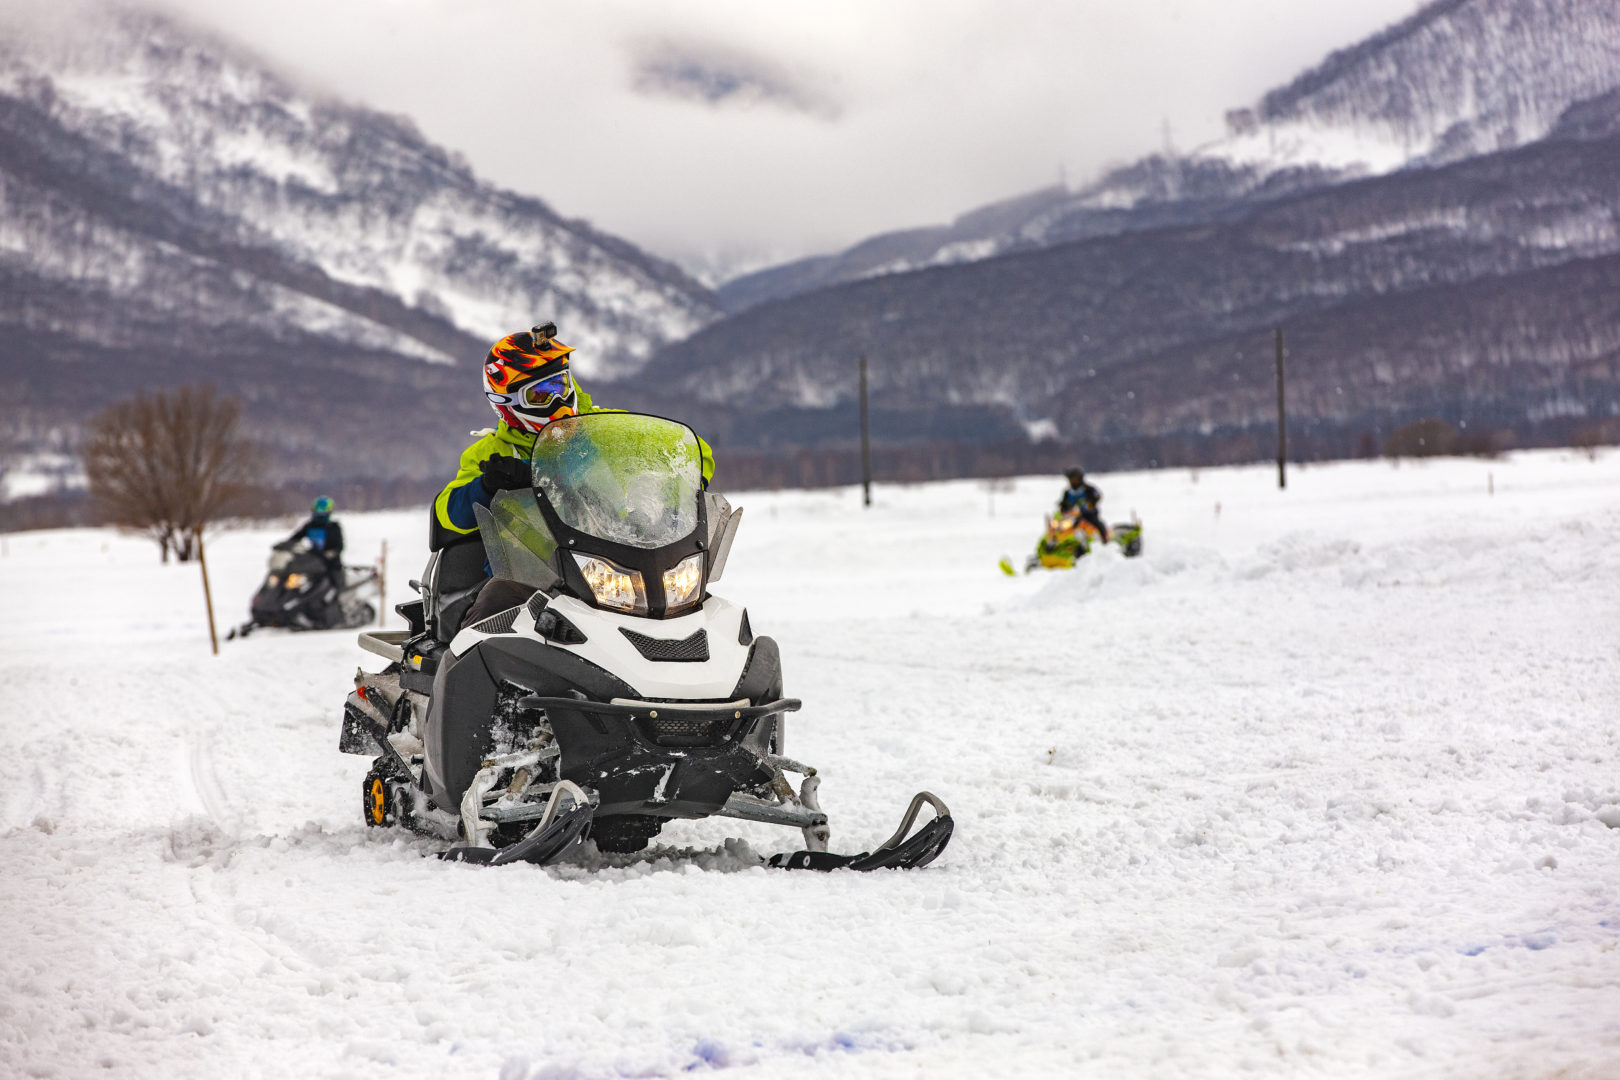 Three people riding snowmobiles in valley surrounded by mountain